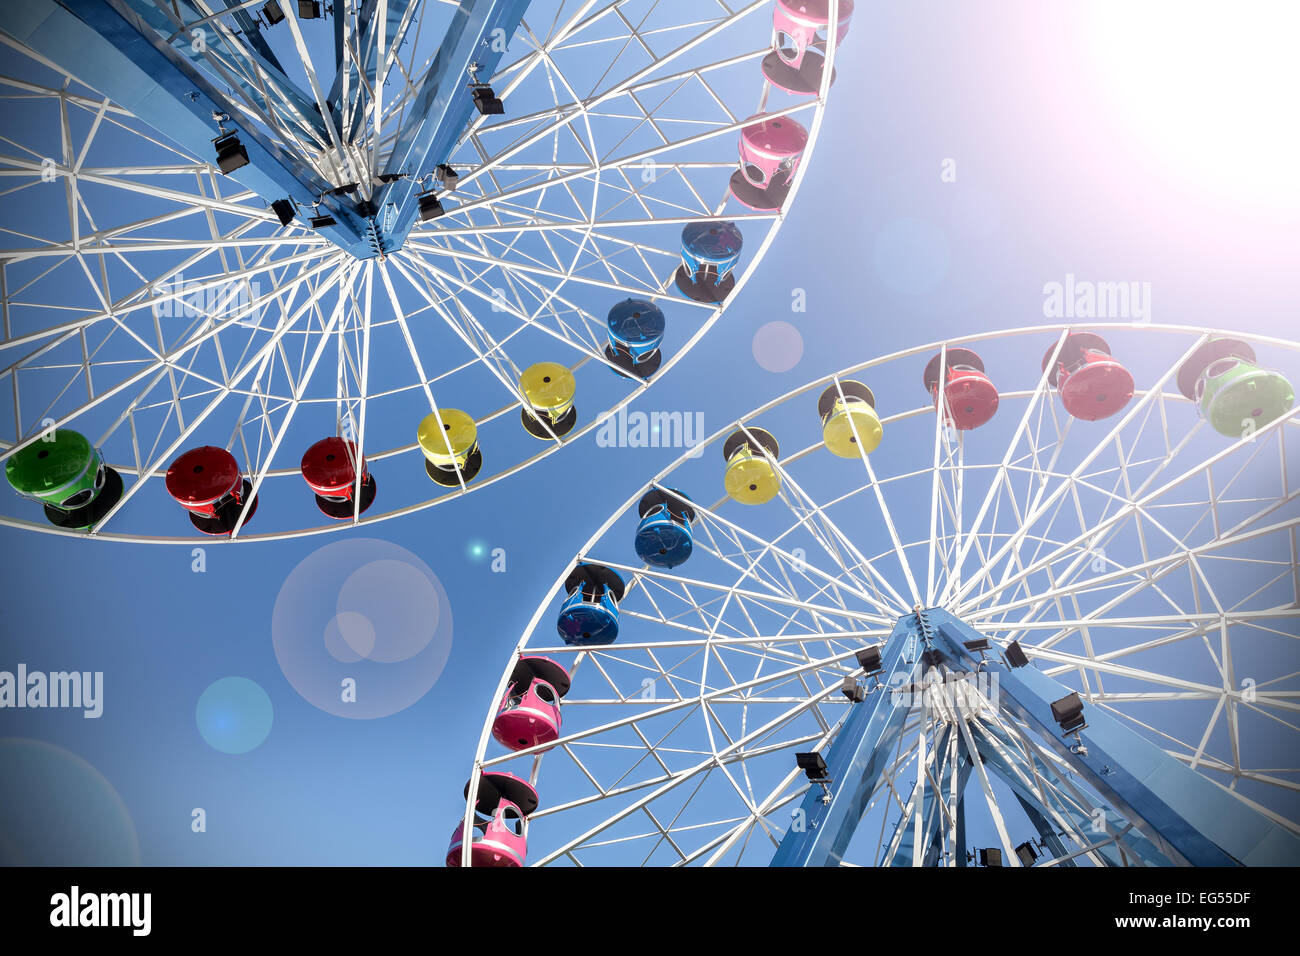 Retro filtered picture of ferris wheels with lens flare. - Stock Image